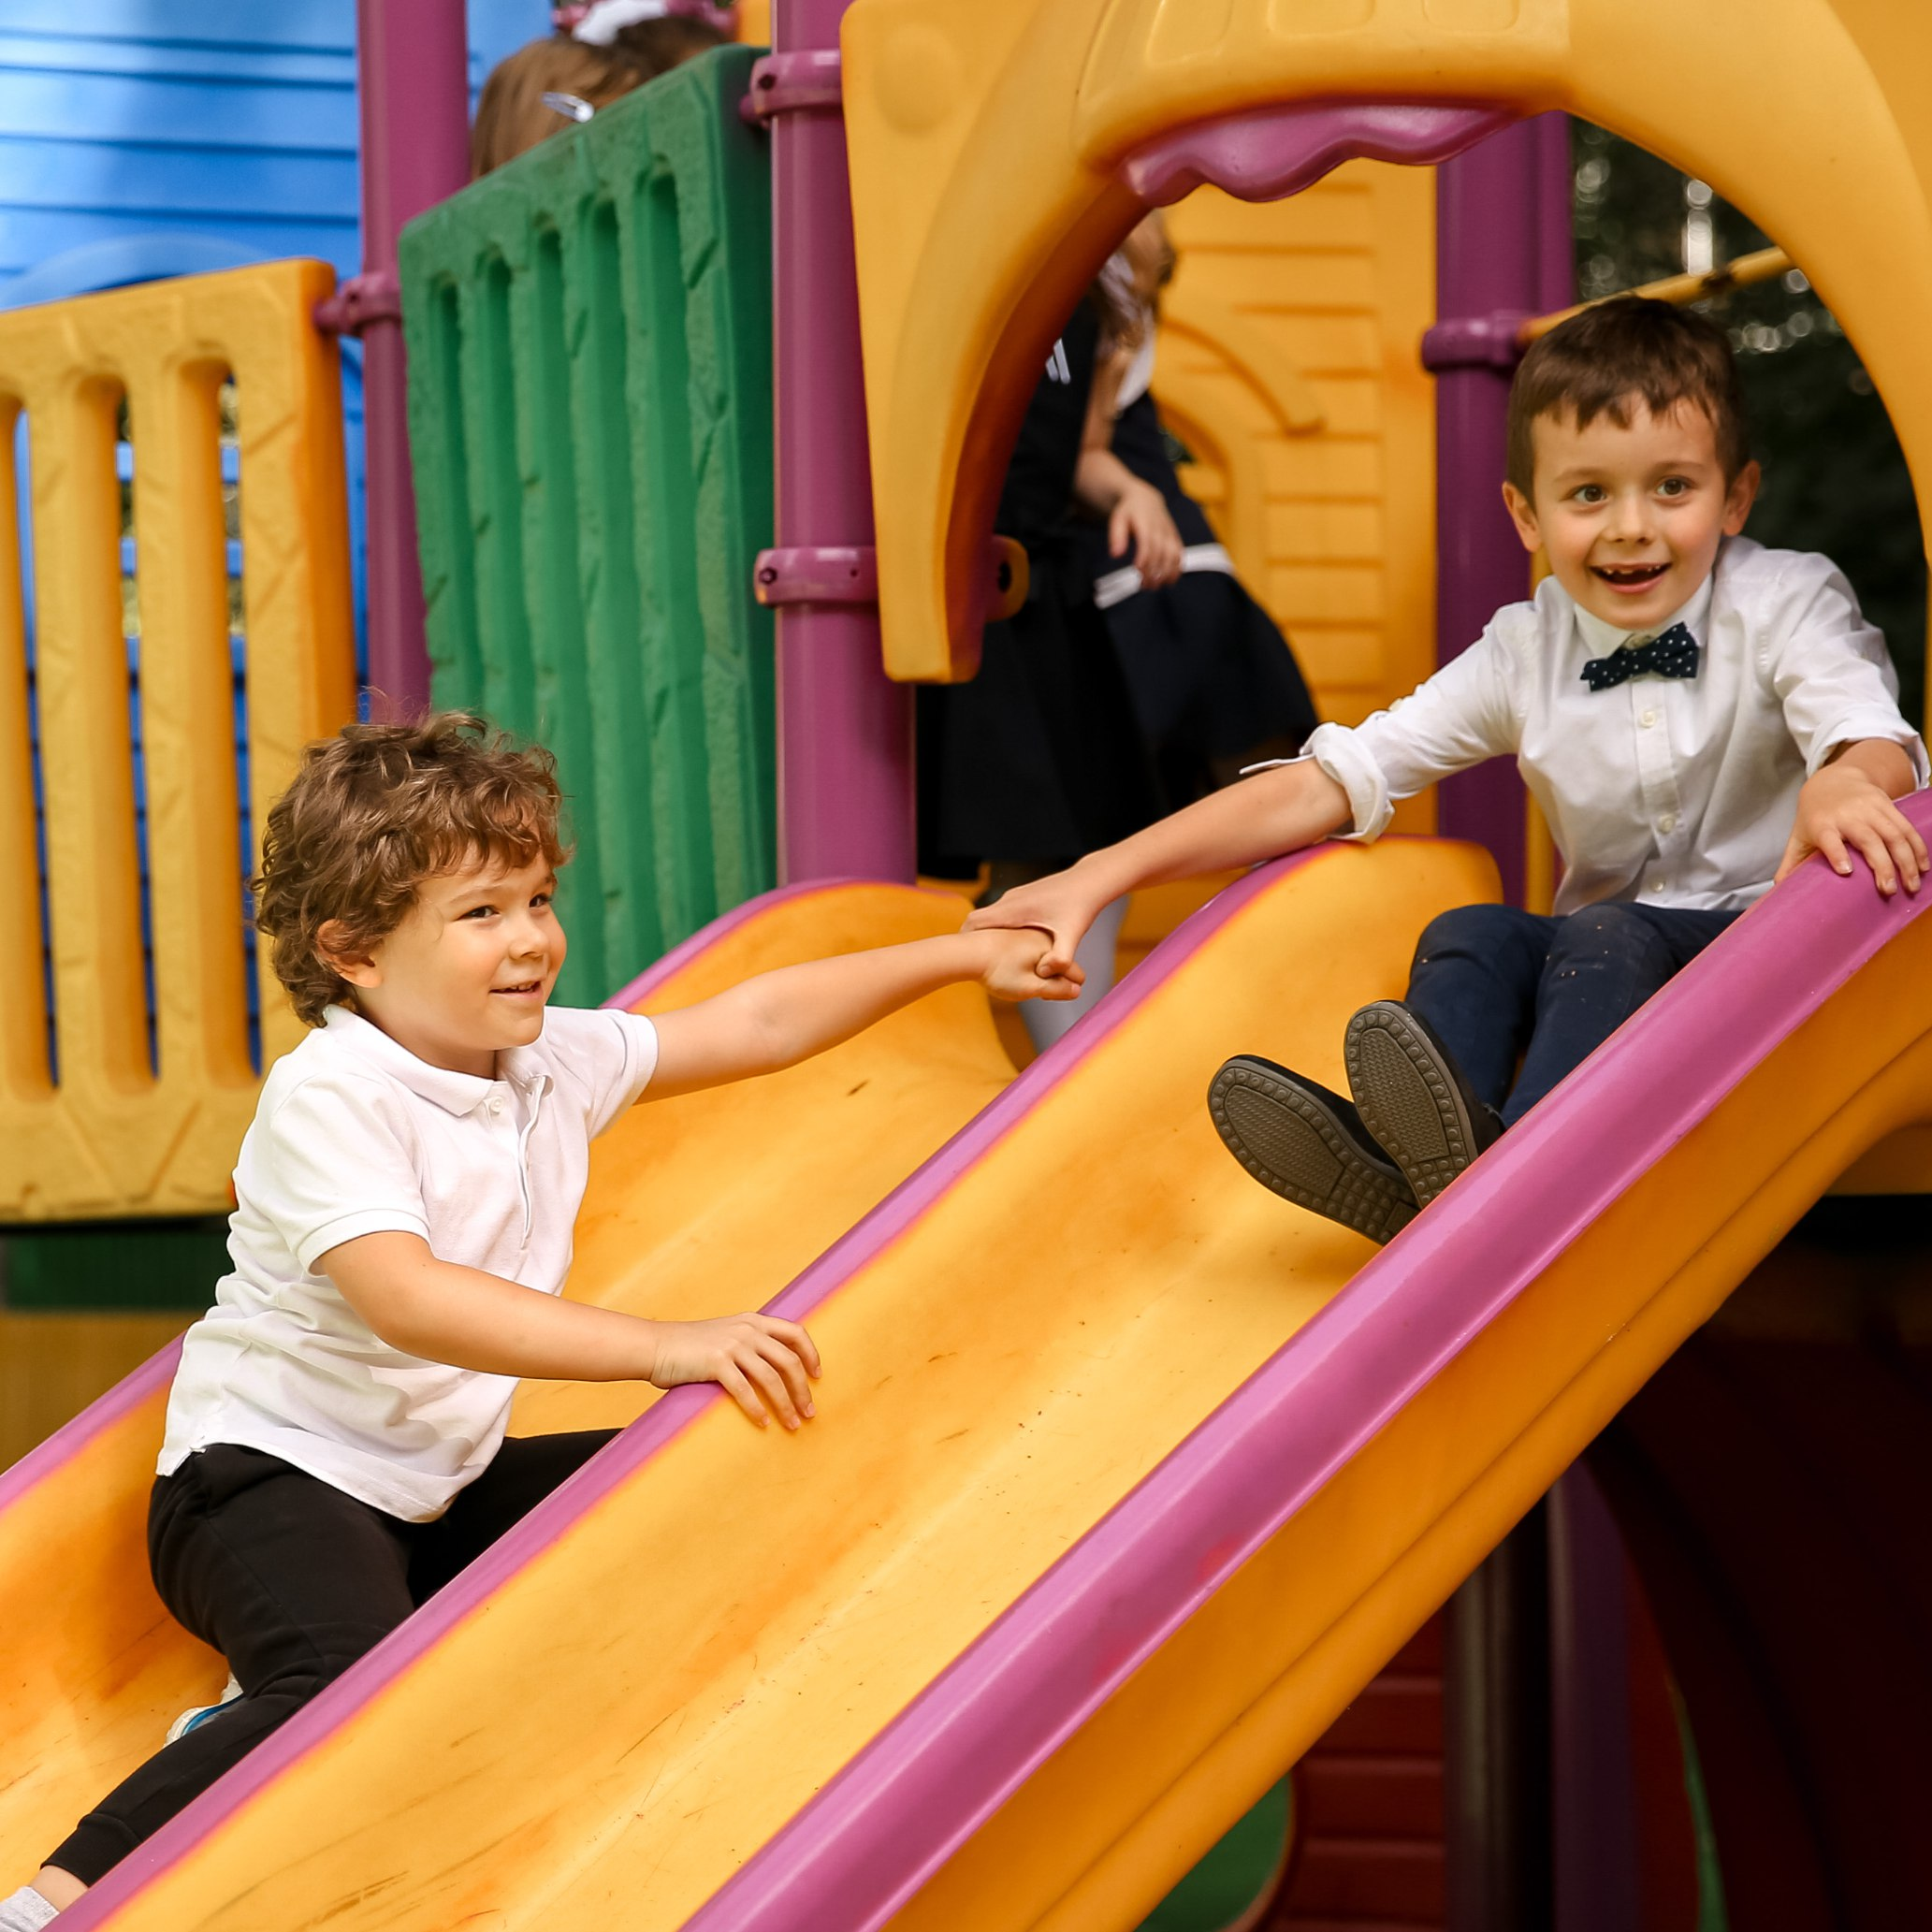 Additional admission to the Moscow campus for children from 2 to 6 years old